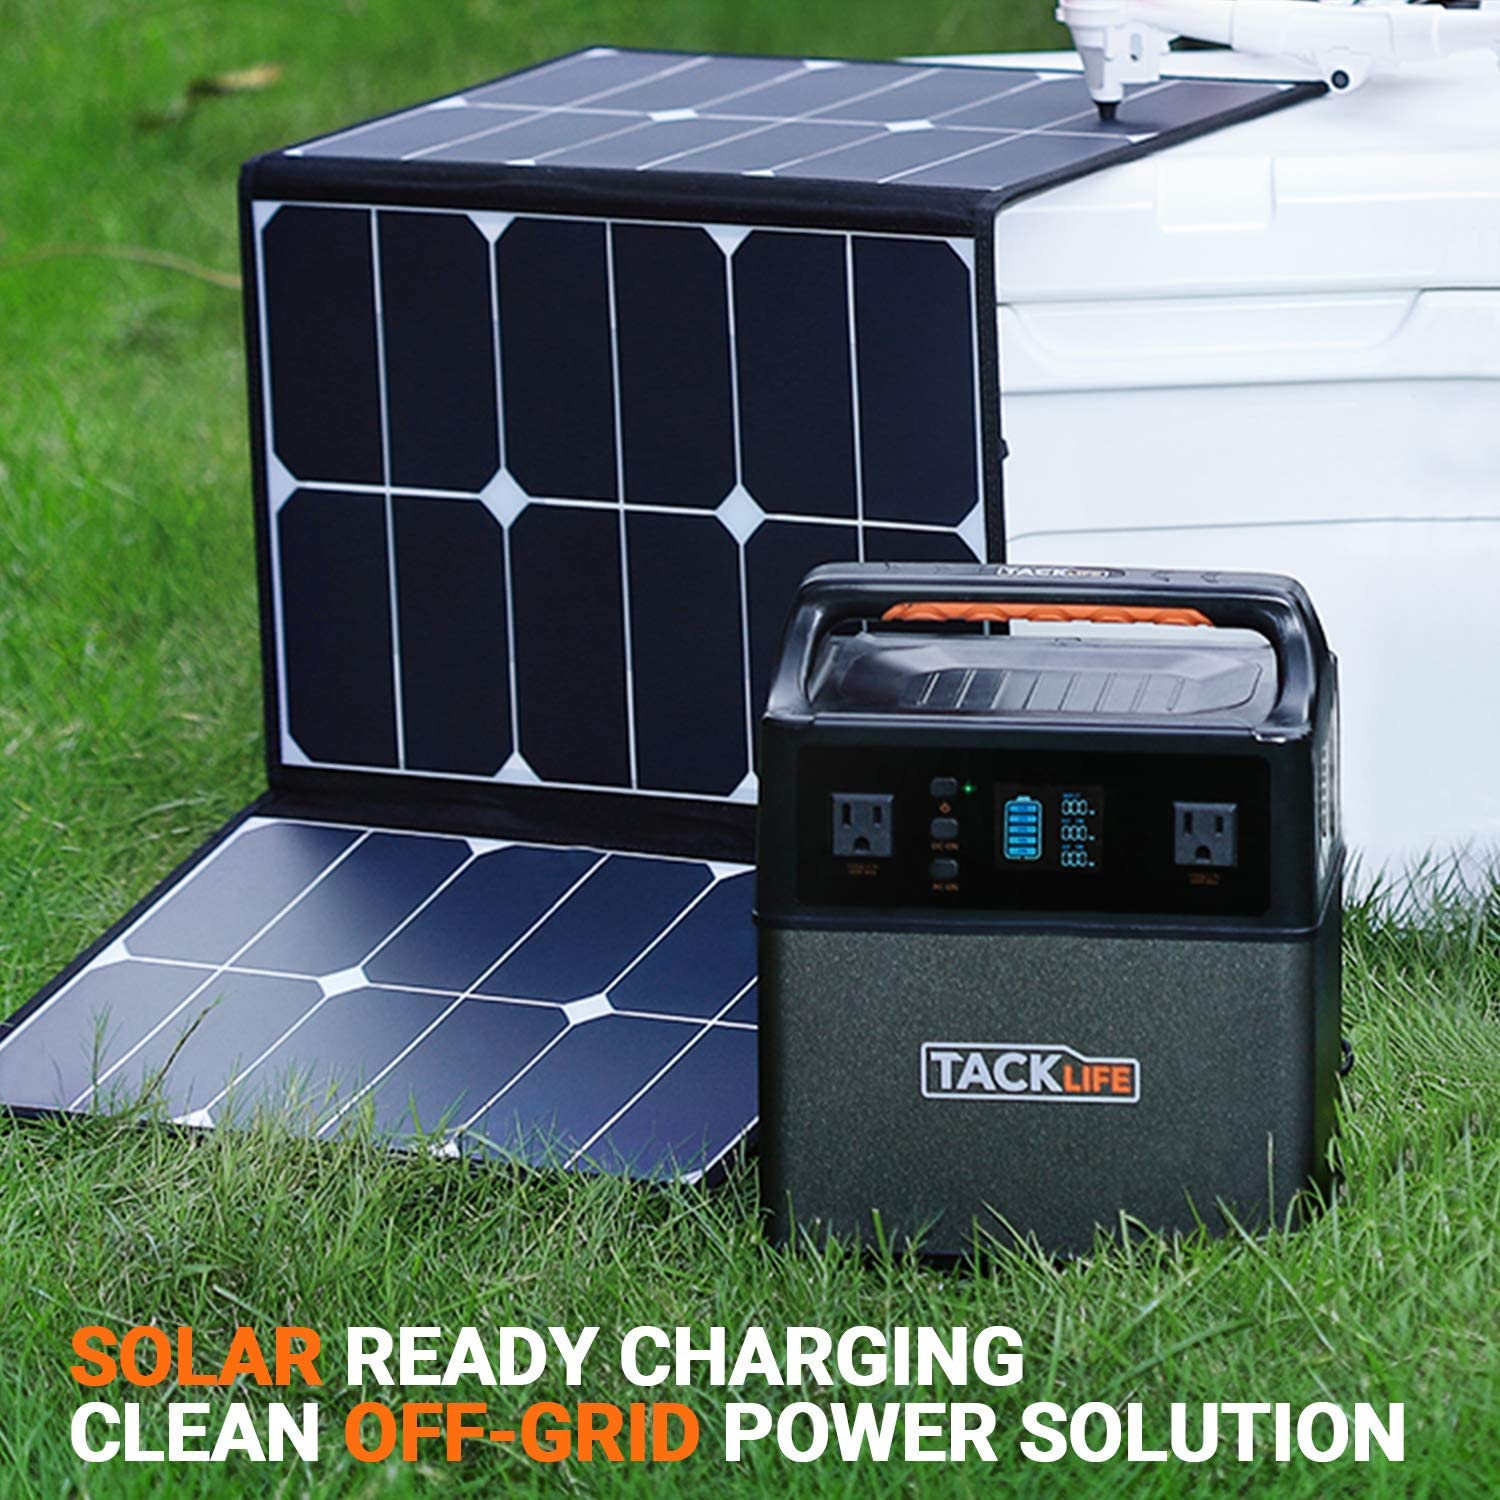 TACKLIFE P40 400Wh Portable Power Station Pure Sine Wave 110V 300W AC Rechargeable Backup Power Supply for Outdoor Using DC Solar Generator with Multiple Outlets